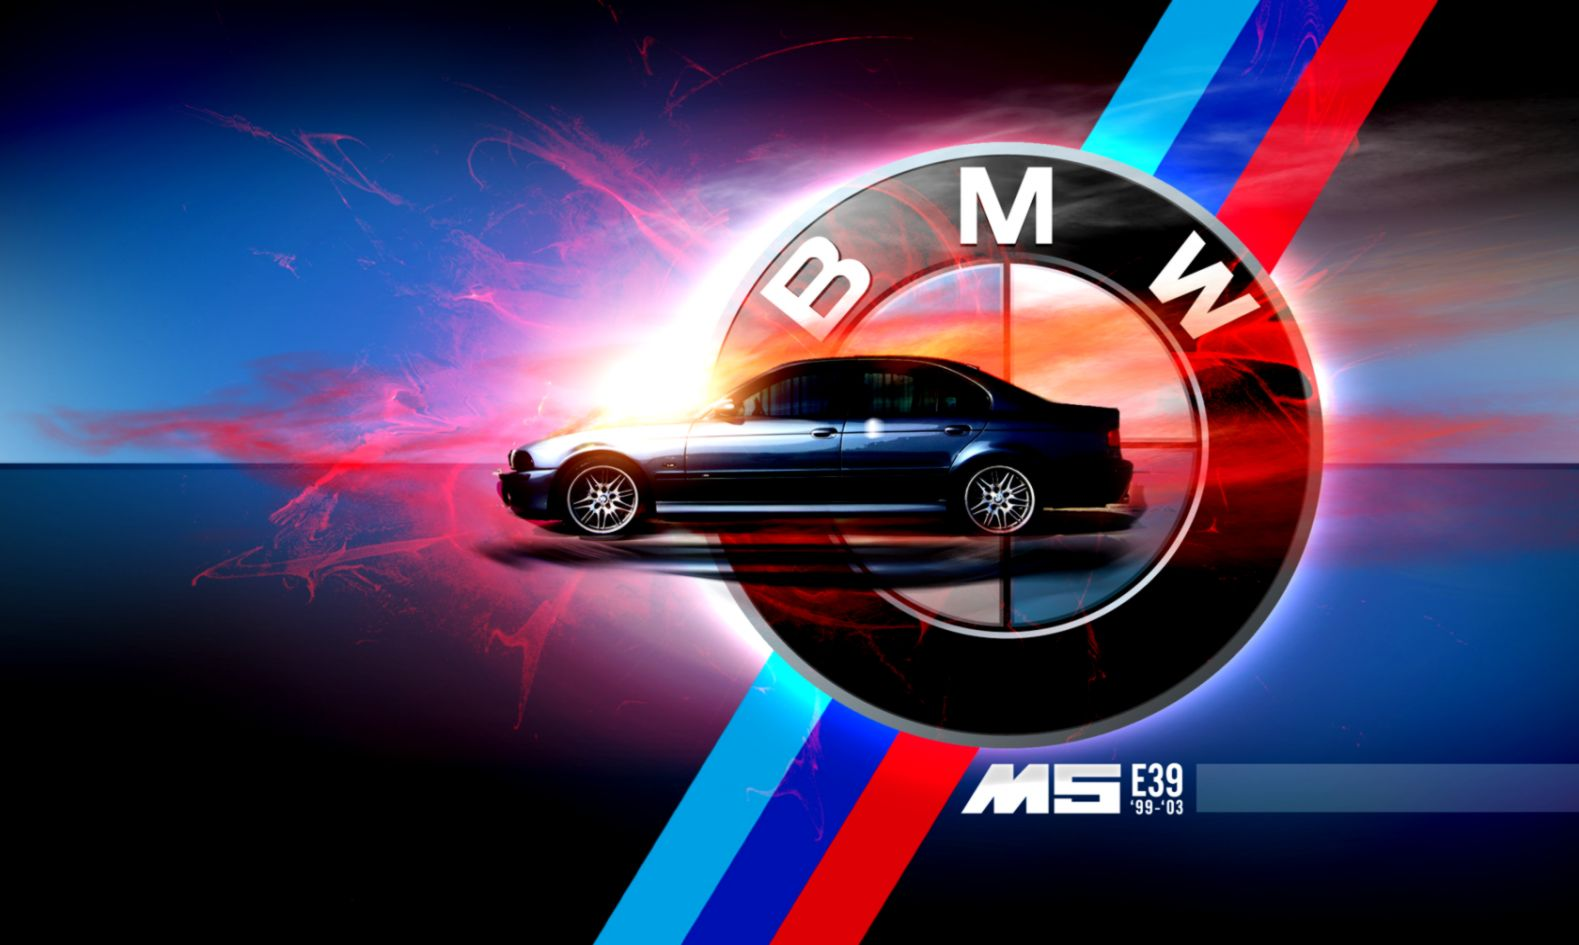 bmw m5 logo hd wallpaper best hd wallpapers. Black Bedroom Furniture Sets. Home Design Ideas